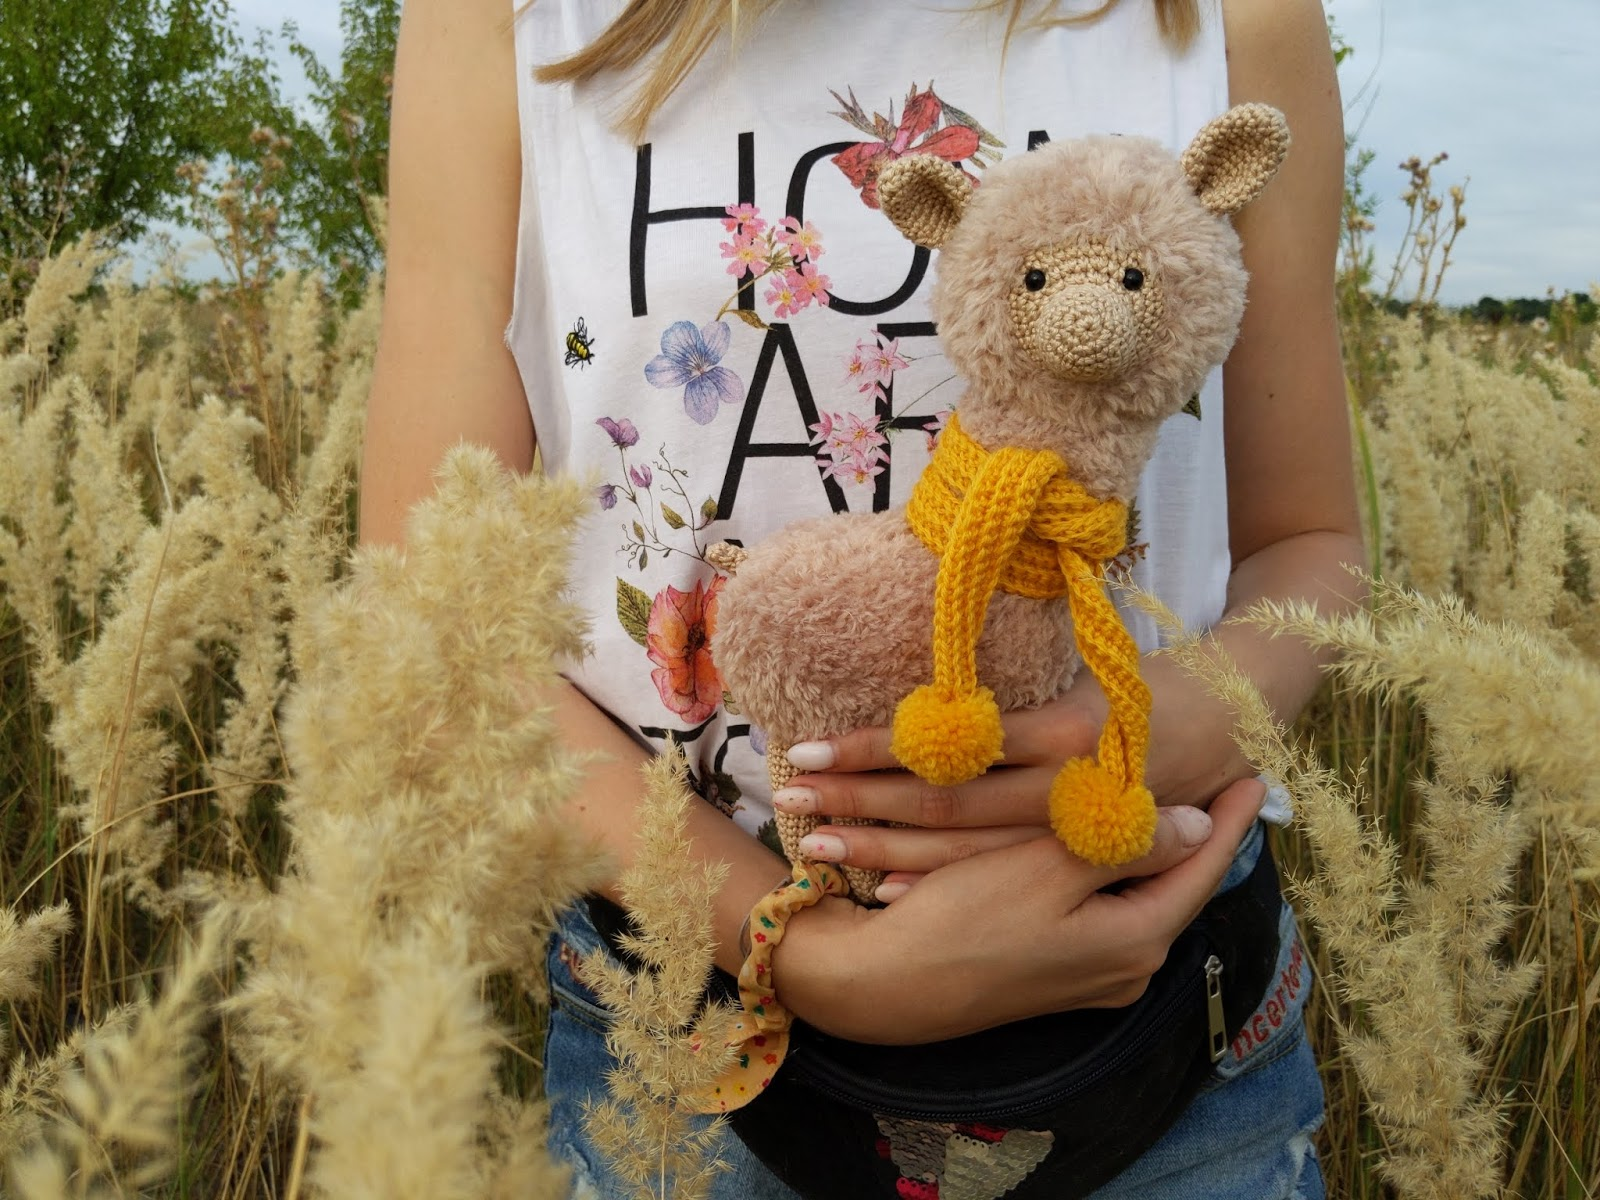 Crochet Alpaca Amigurumi Free Patterns | Crochet animal patterns ... | 1200x1600